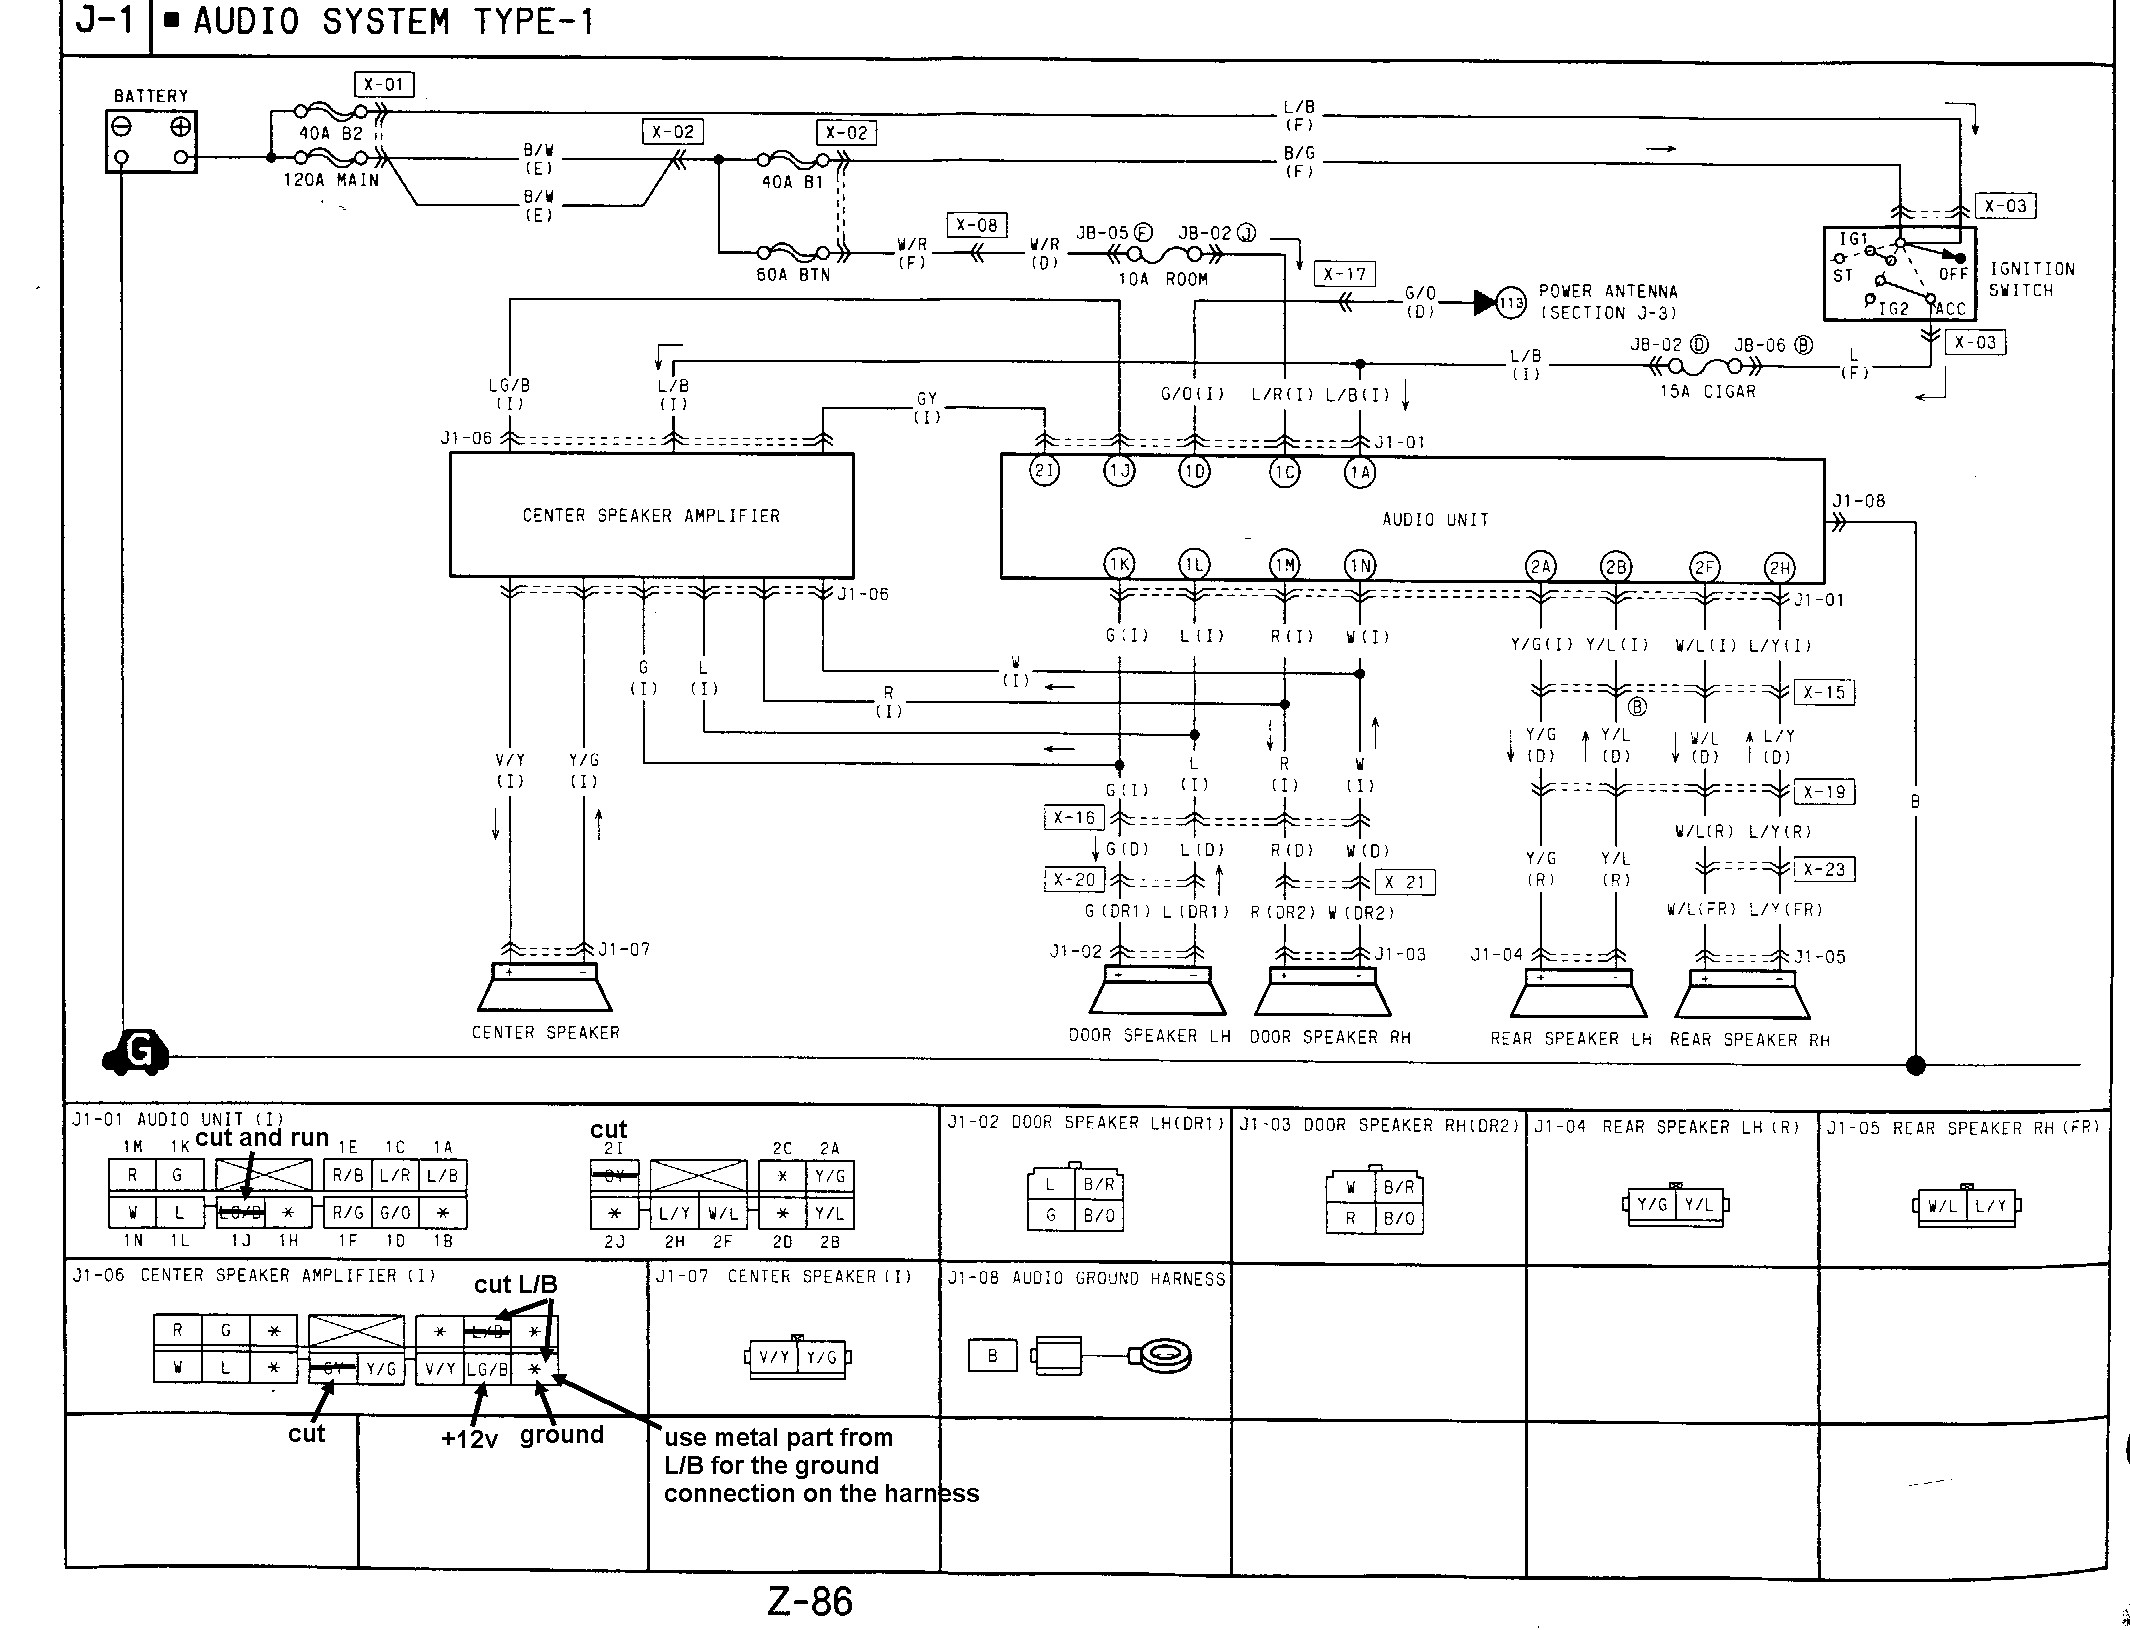 ... audi wiring diagram 04 wire data schema u2022 rh lemise co audi a6 c6 wiring  diagram